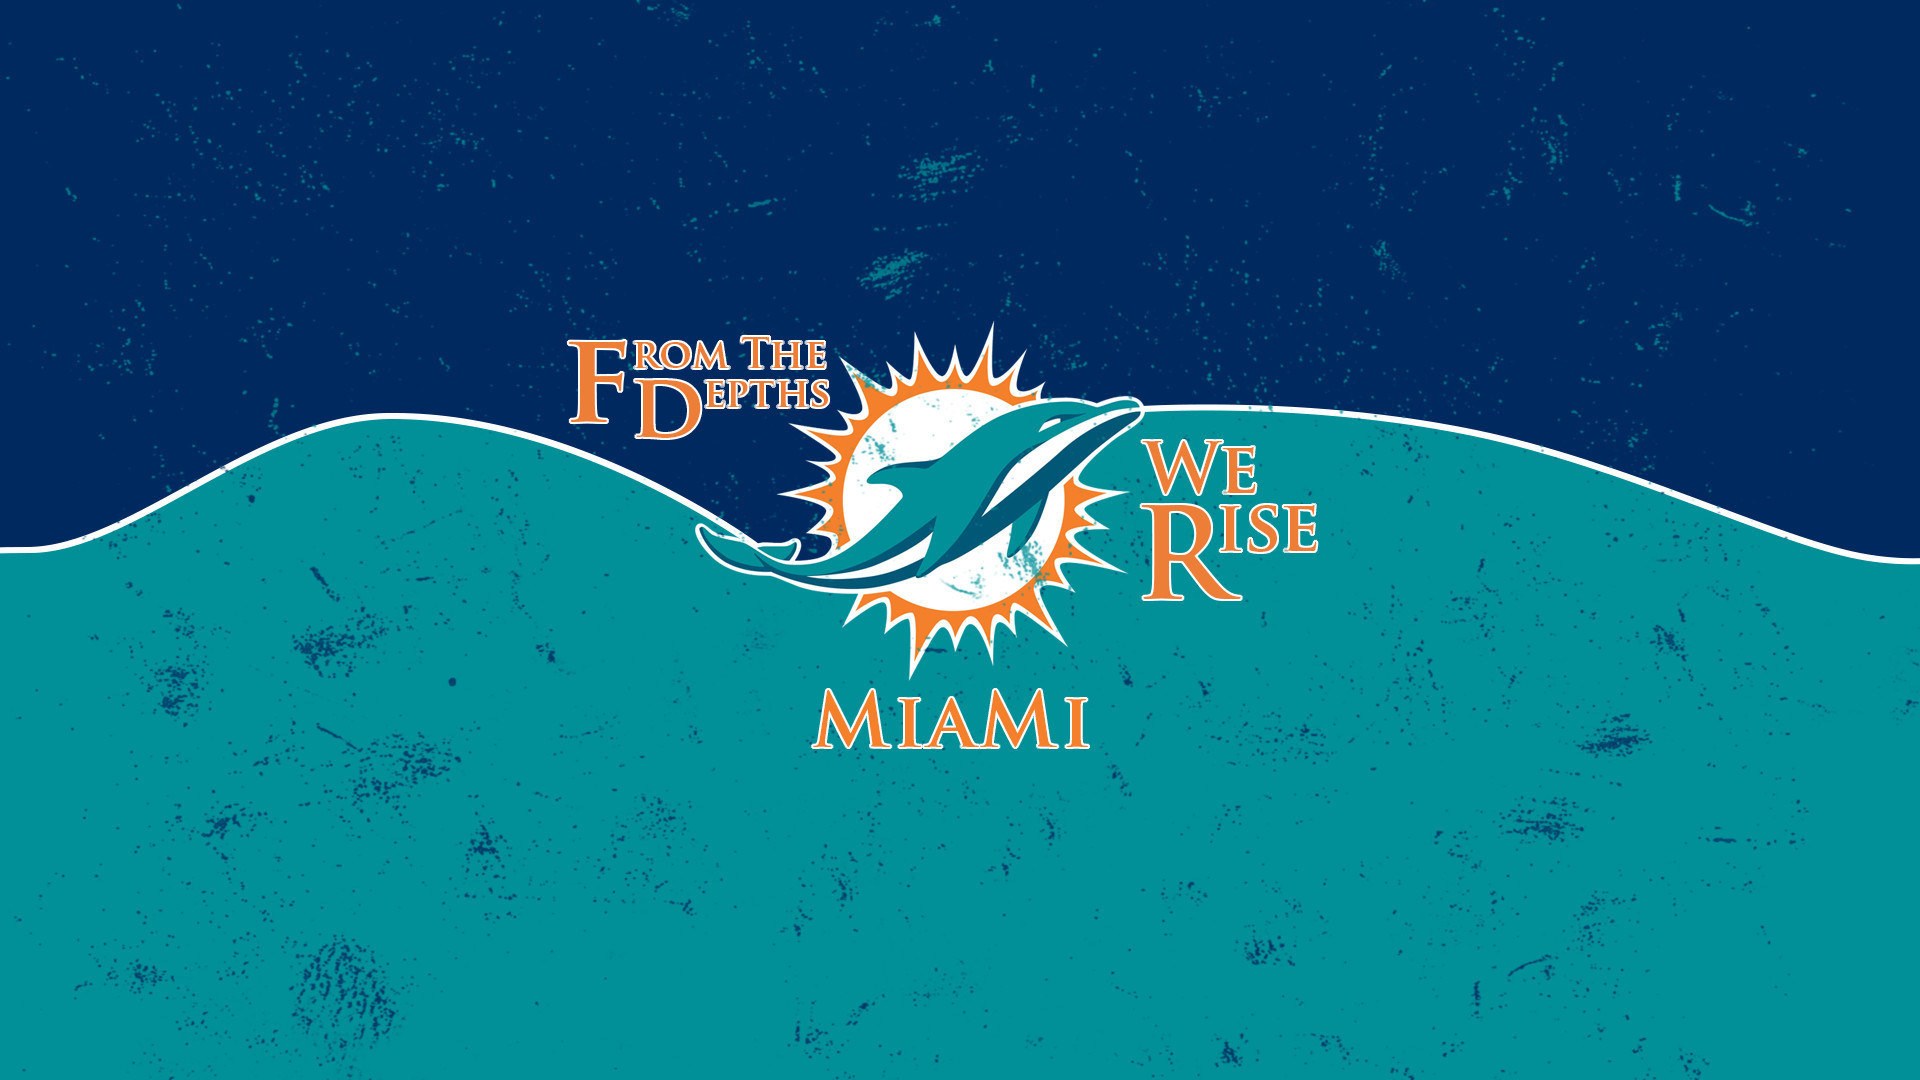 Miami Dolphins New Logo Phone Wallpaper Thrones 1080p wallpapers